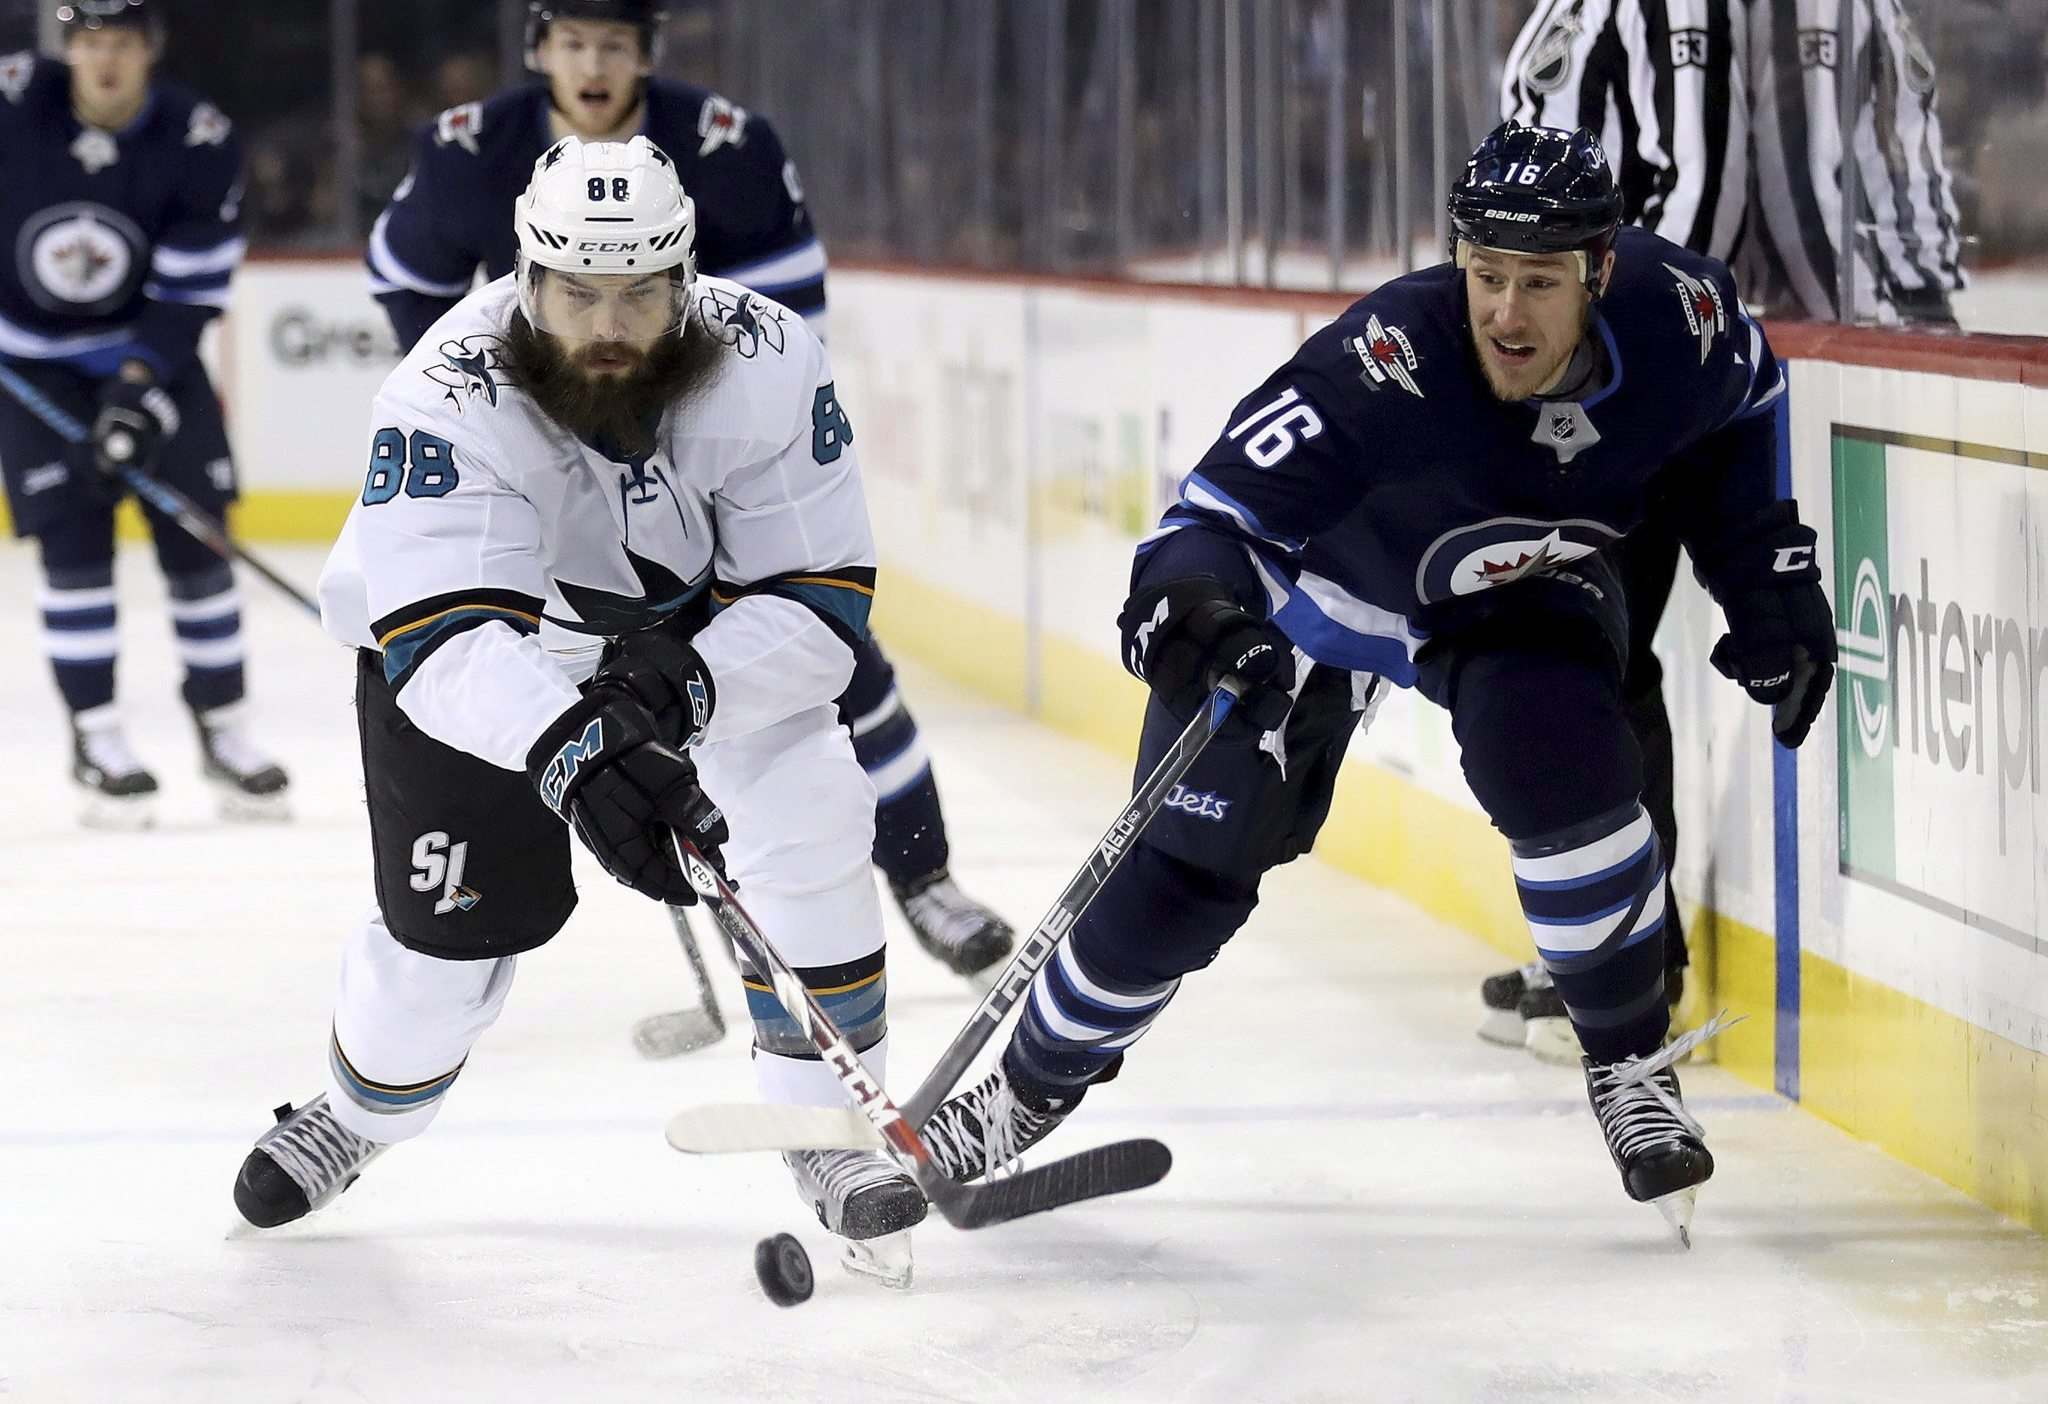 TREVOR HAGAN / THE CANADIAN PRESS</p><p>Shawn Matthias races for the puck during Sunday&#39;s game against the Sharks in Winnipeg.</p>